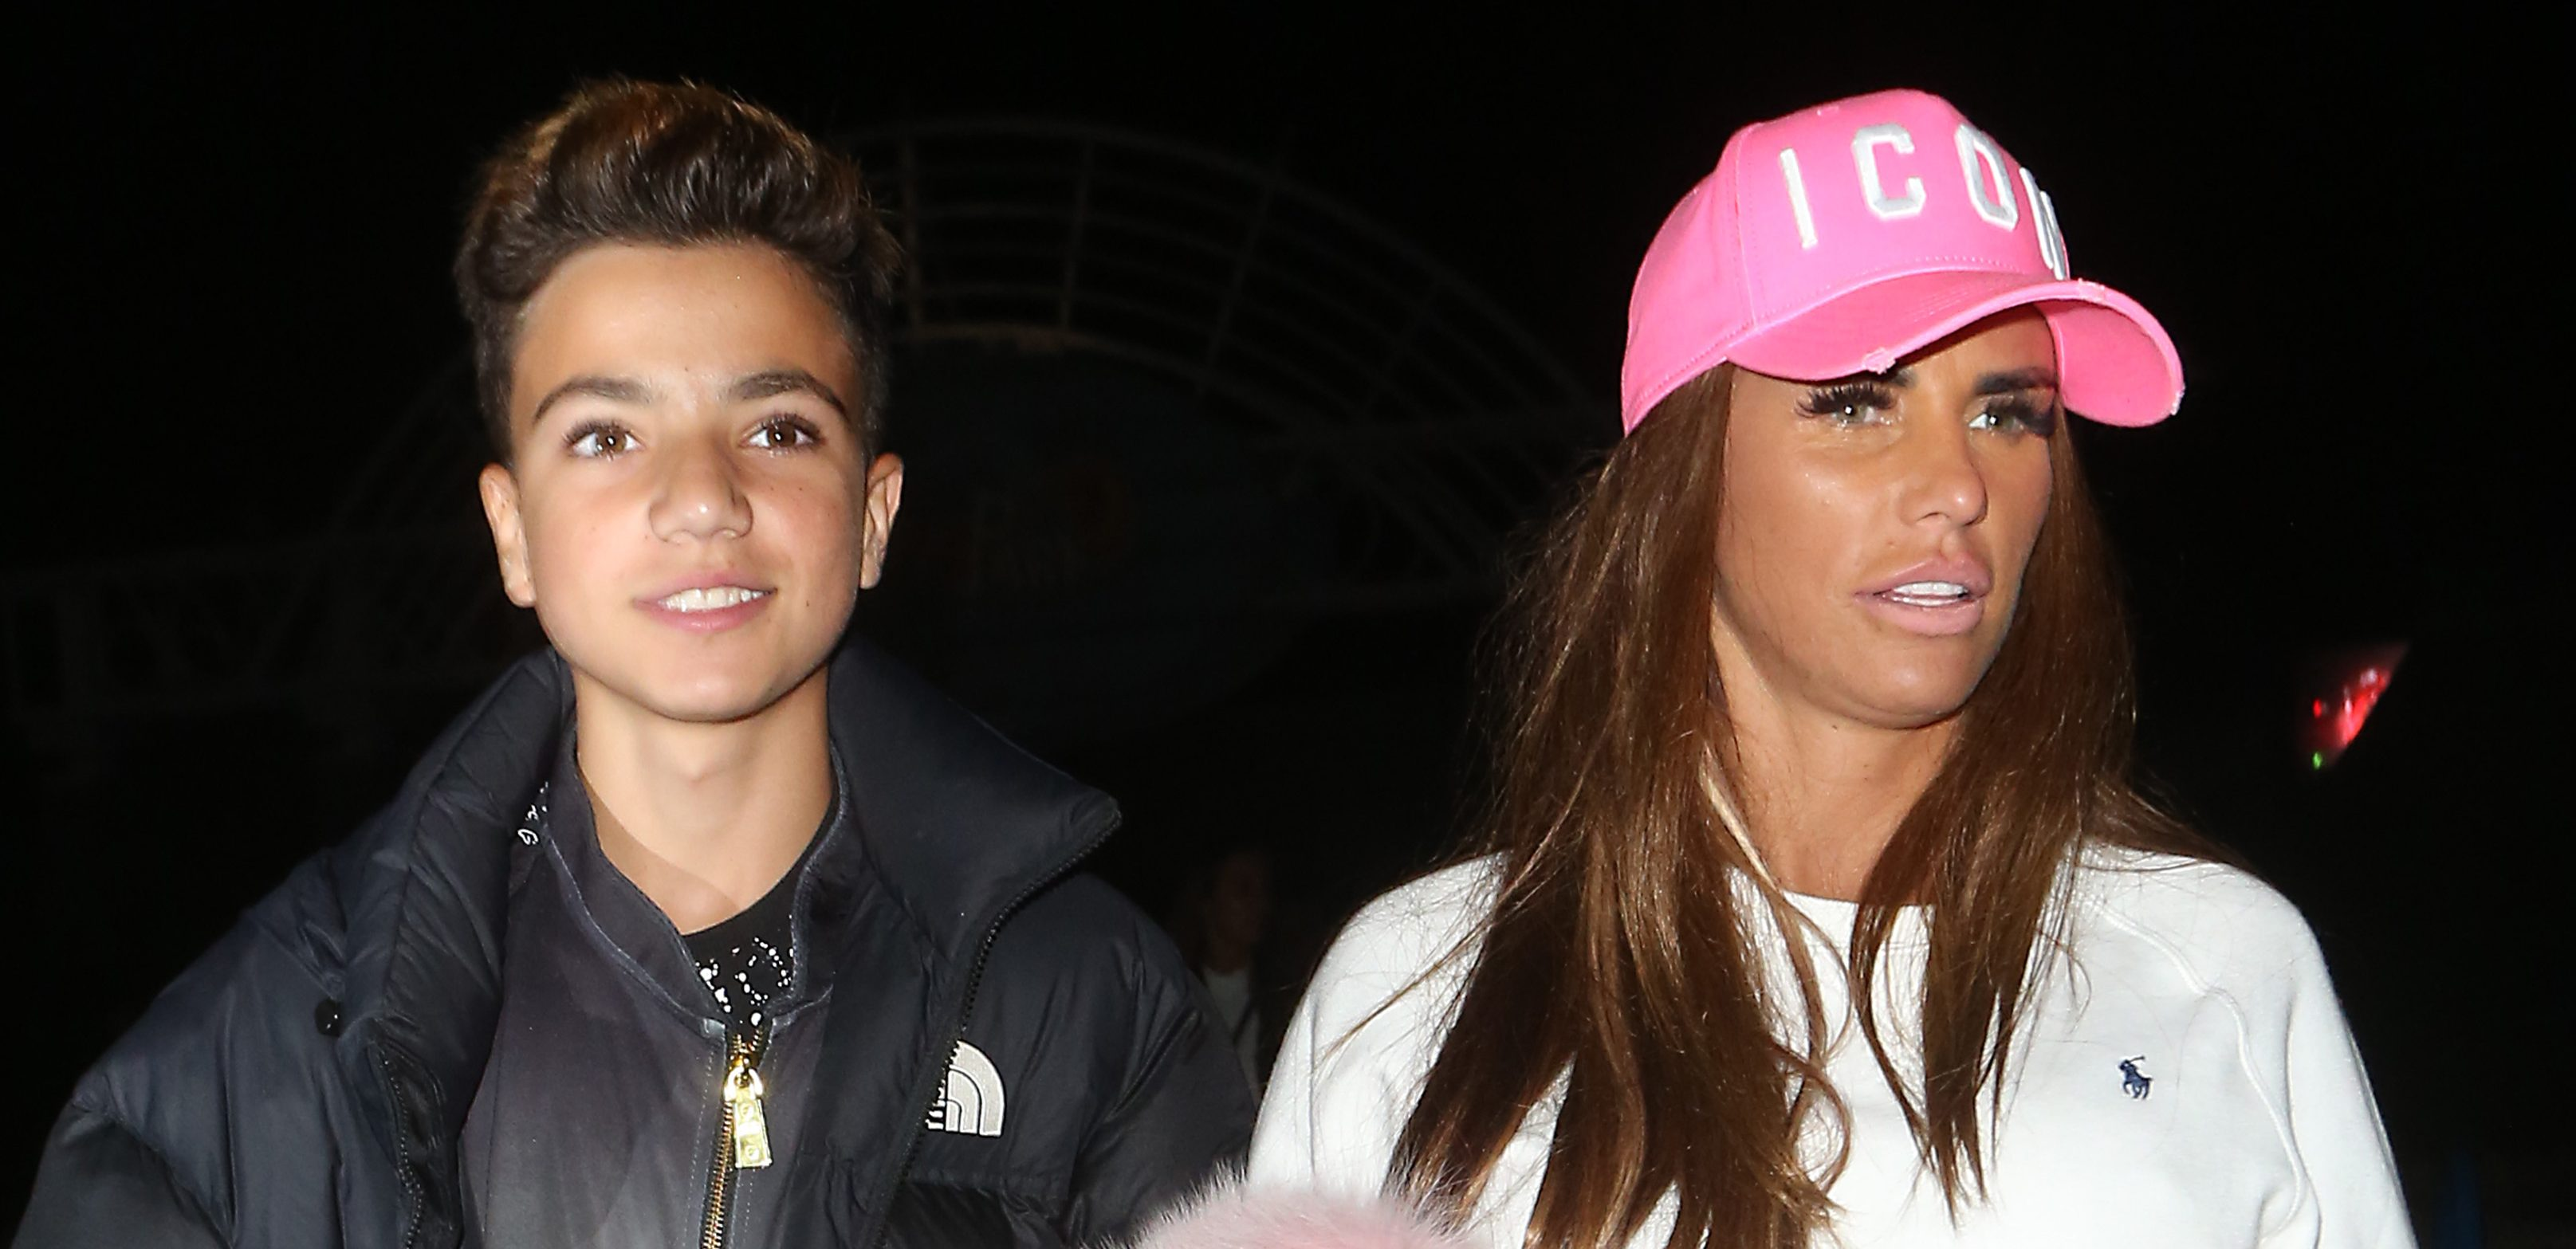 Junior Andre is 'too embarrassed' to visit mum Katie Price's 'mucky mansion'